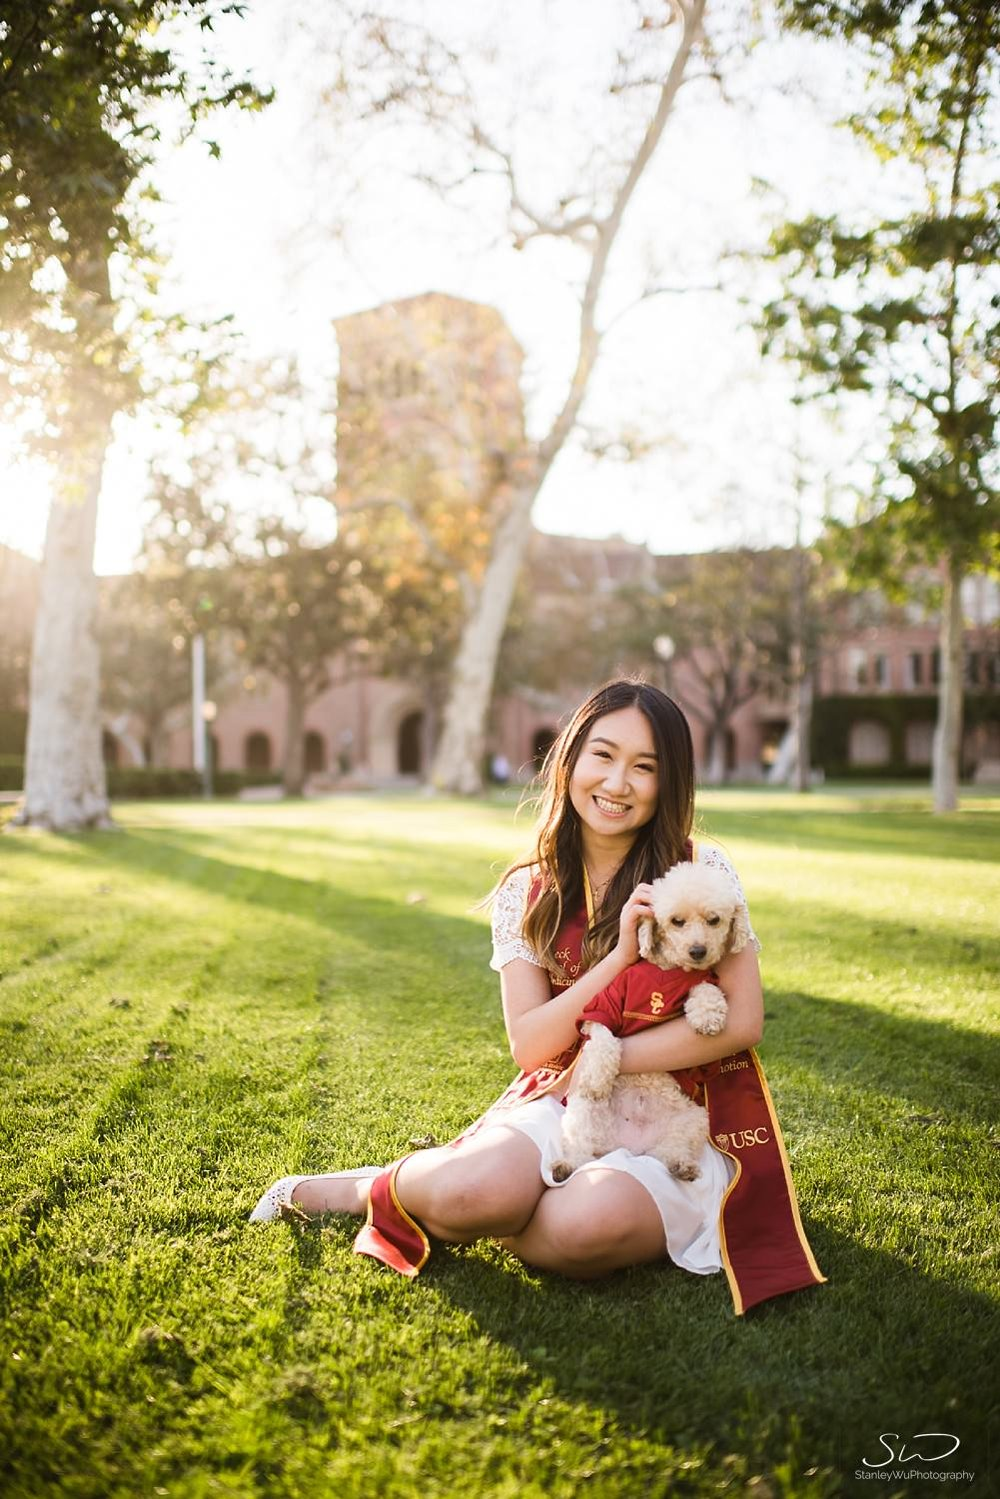 Graduation portrait and pet photography at USC | Los Angeles Orange County Senior Portrait & Wedding Photographer